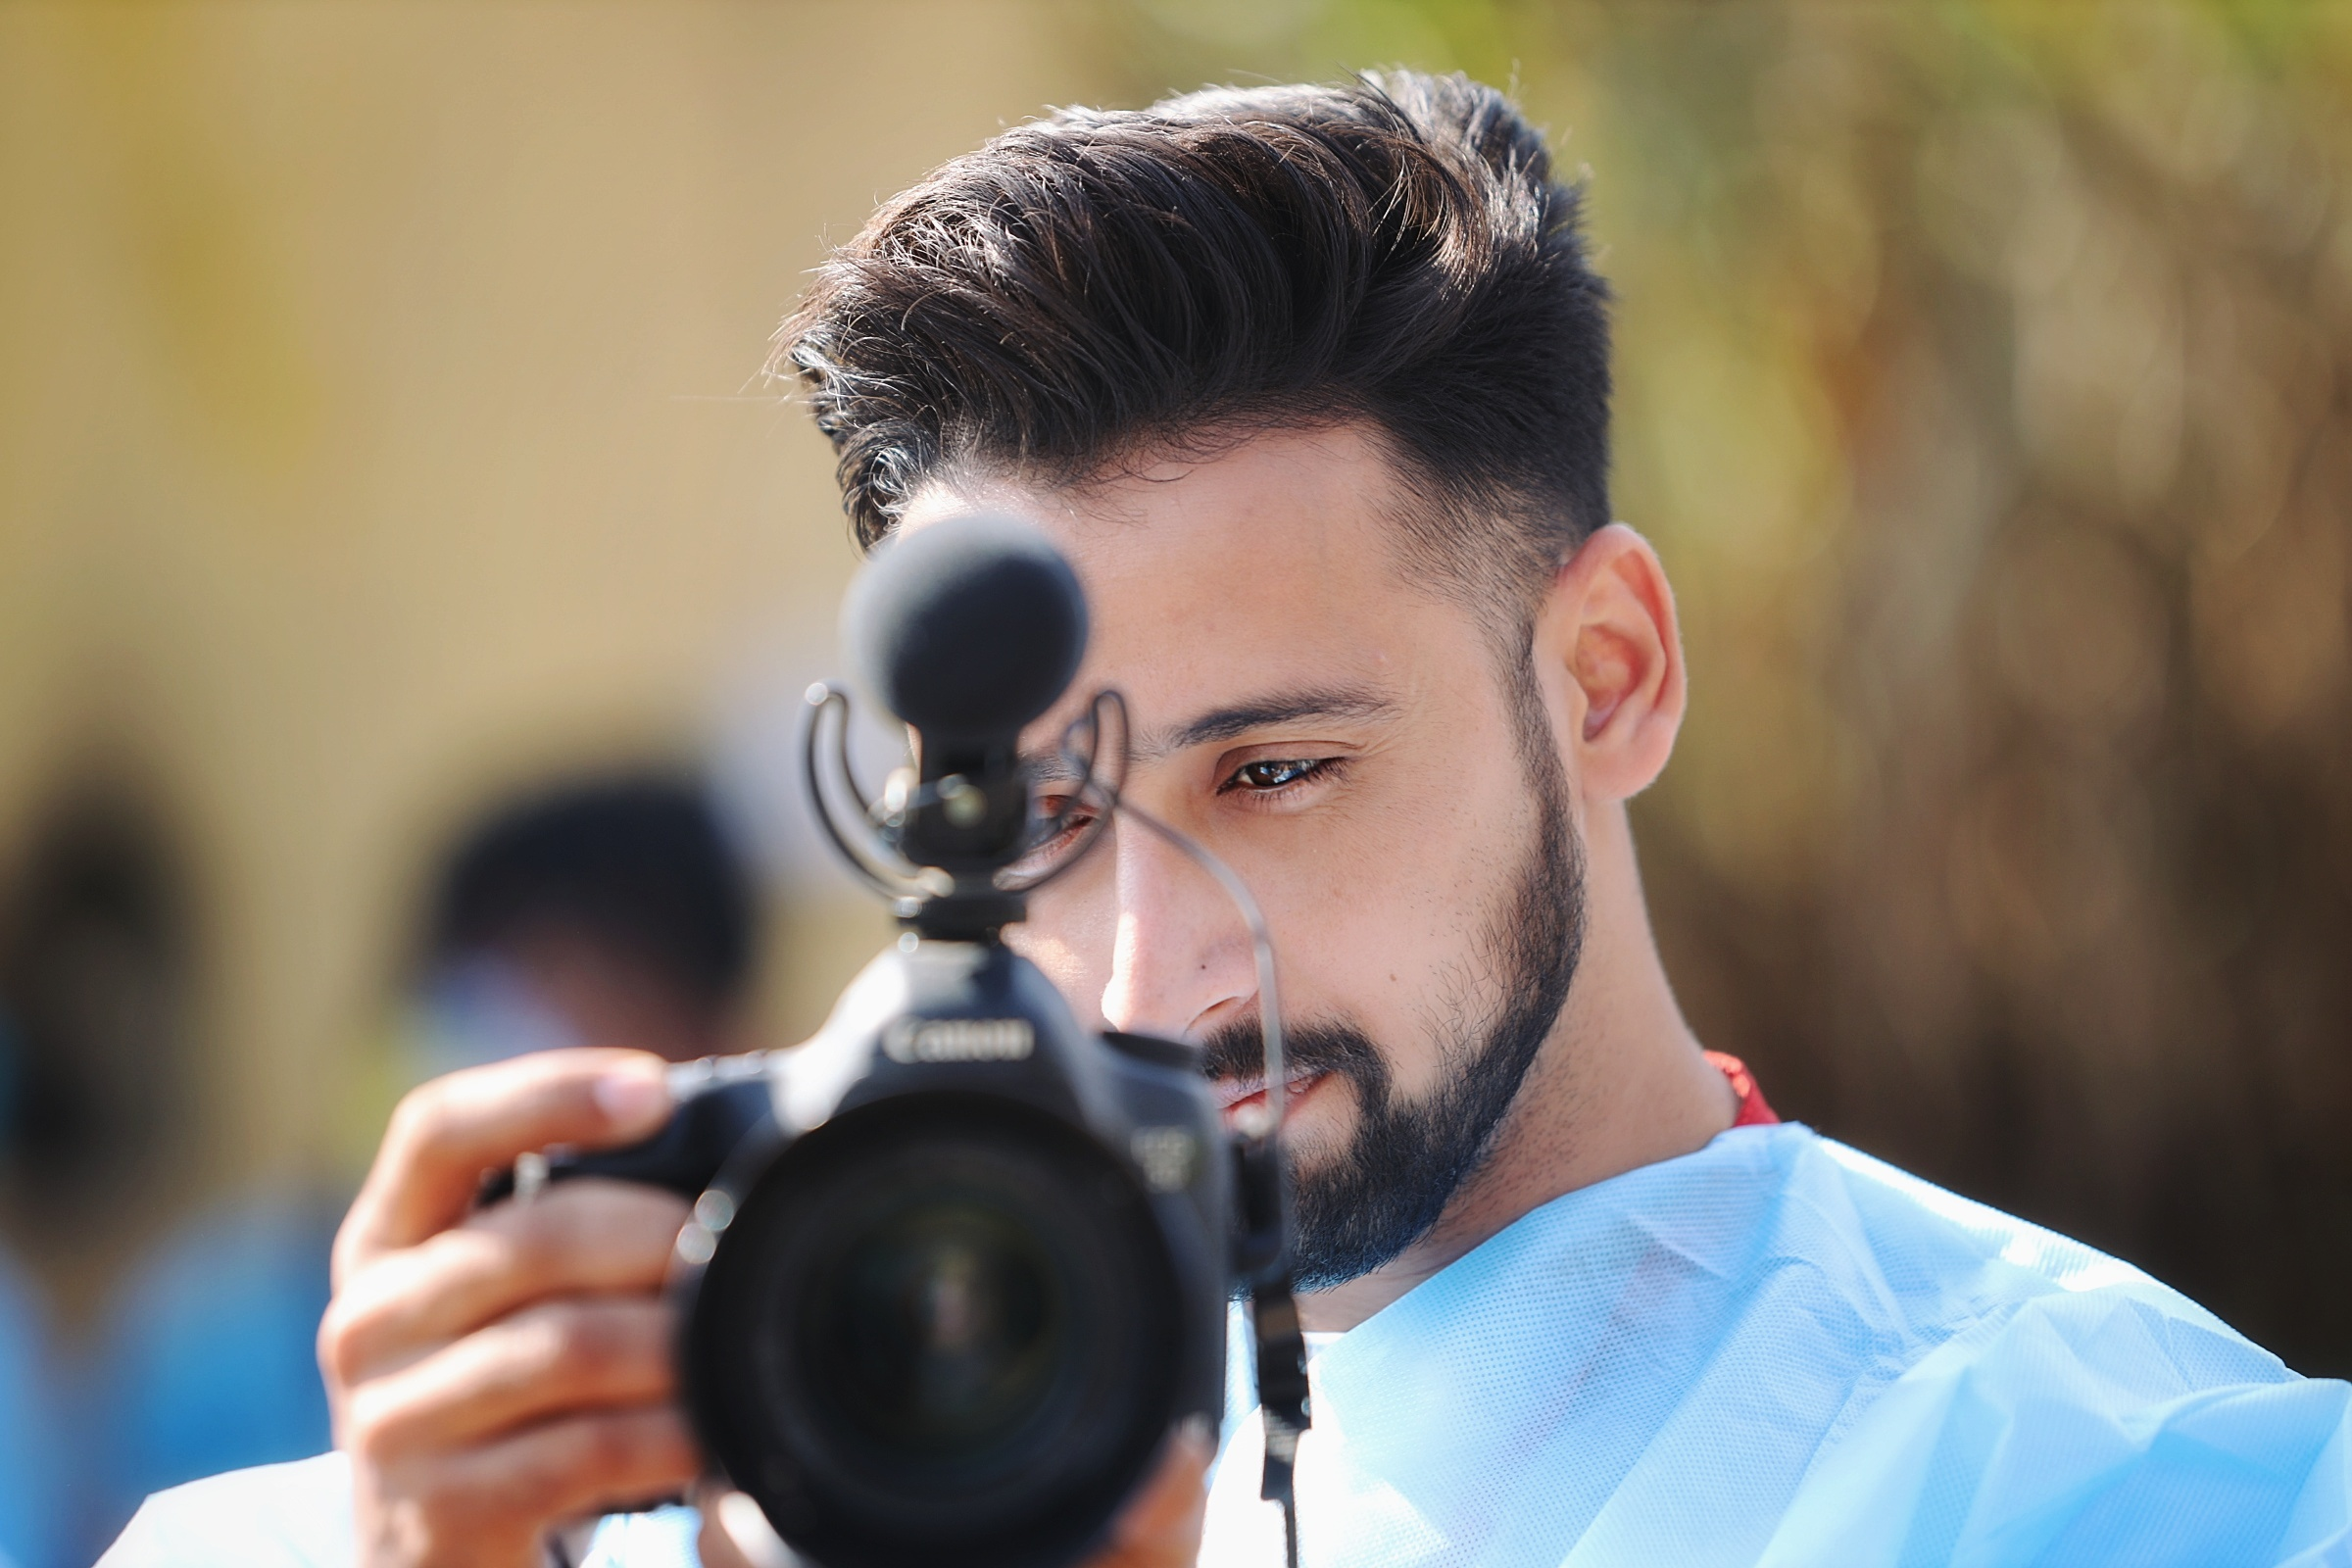 Boy clicking picture with the camera